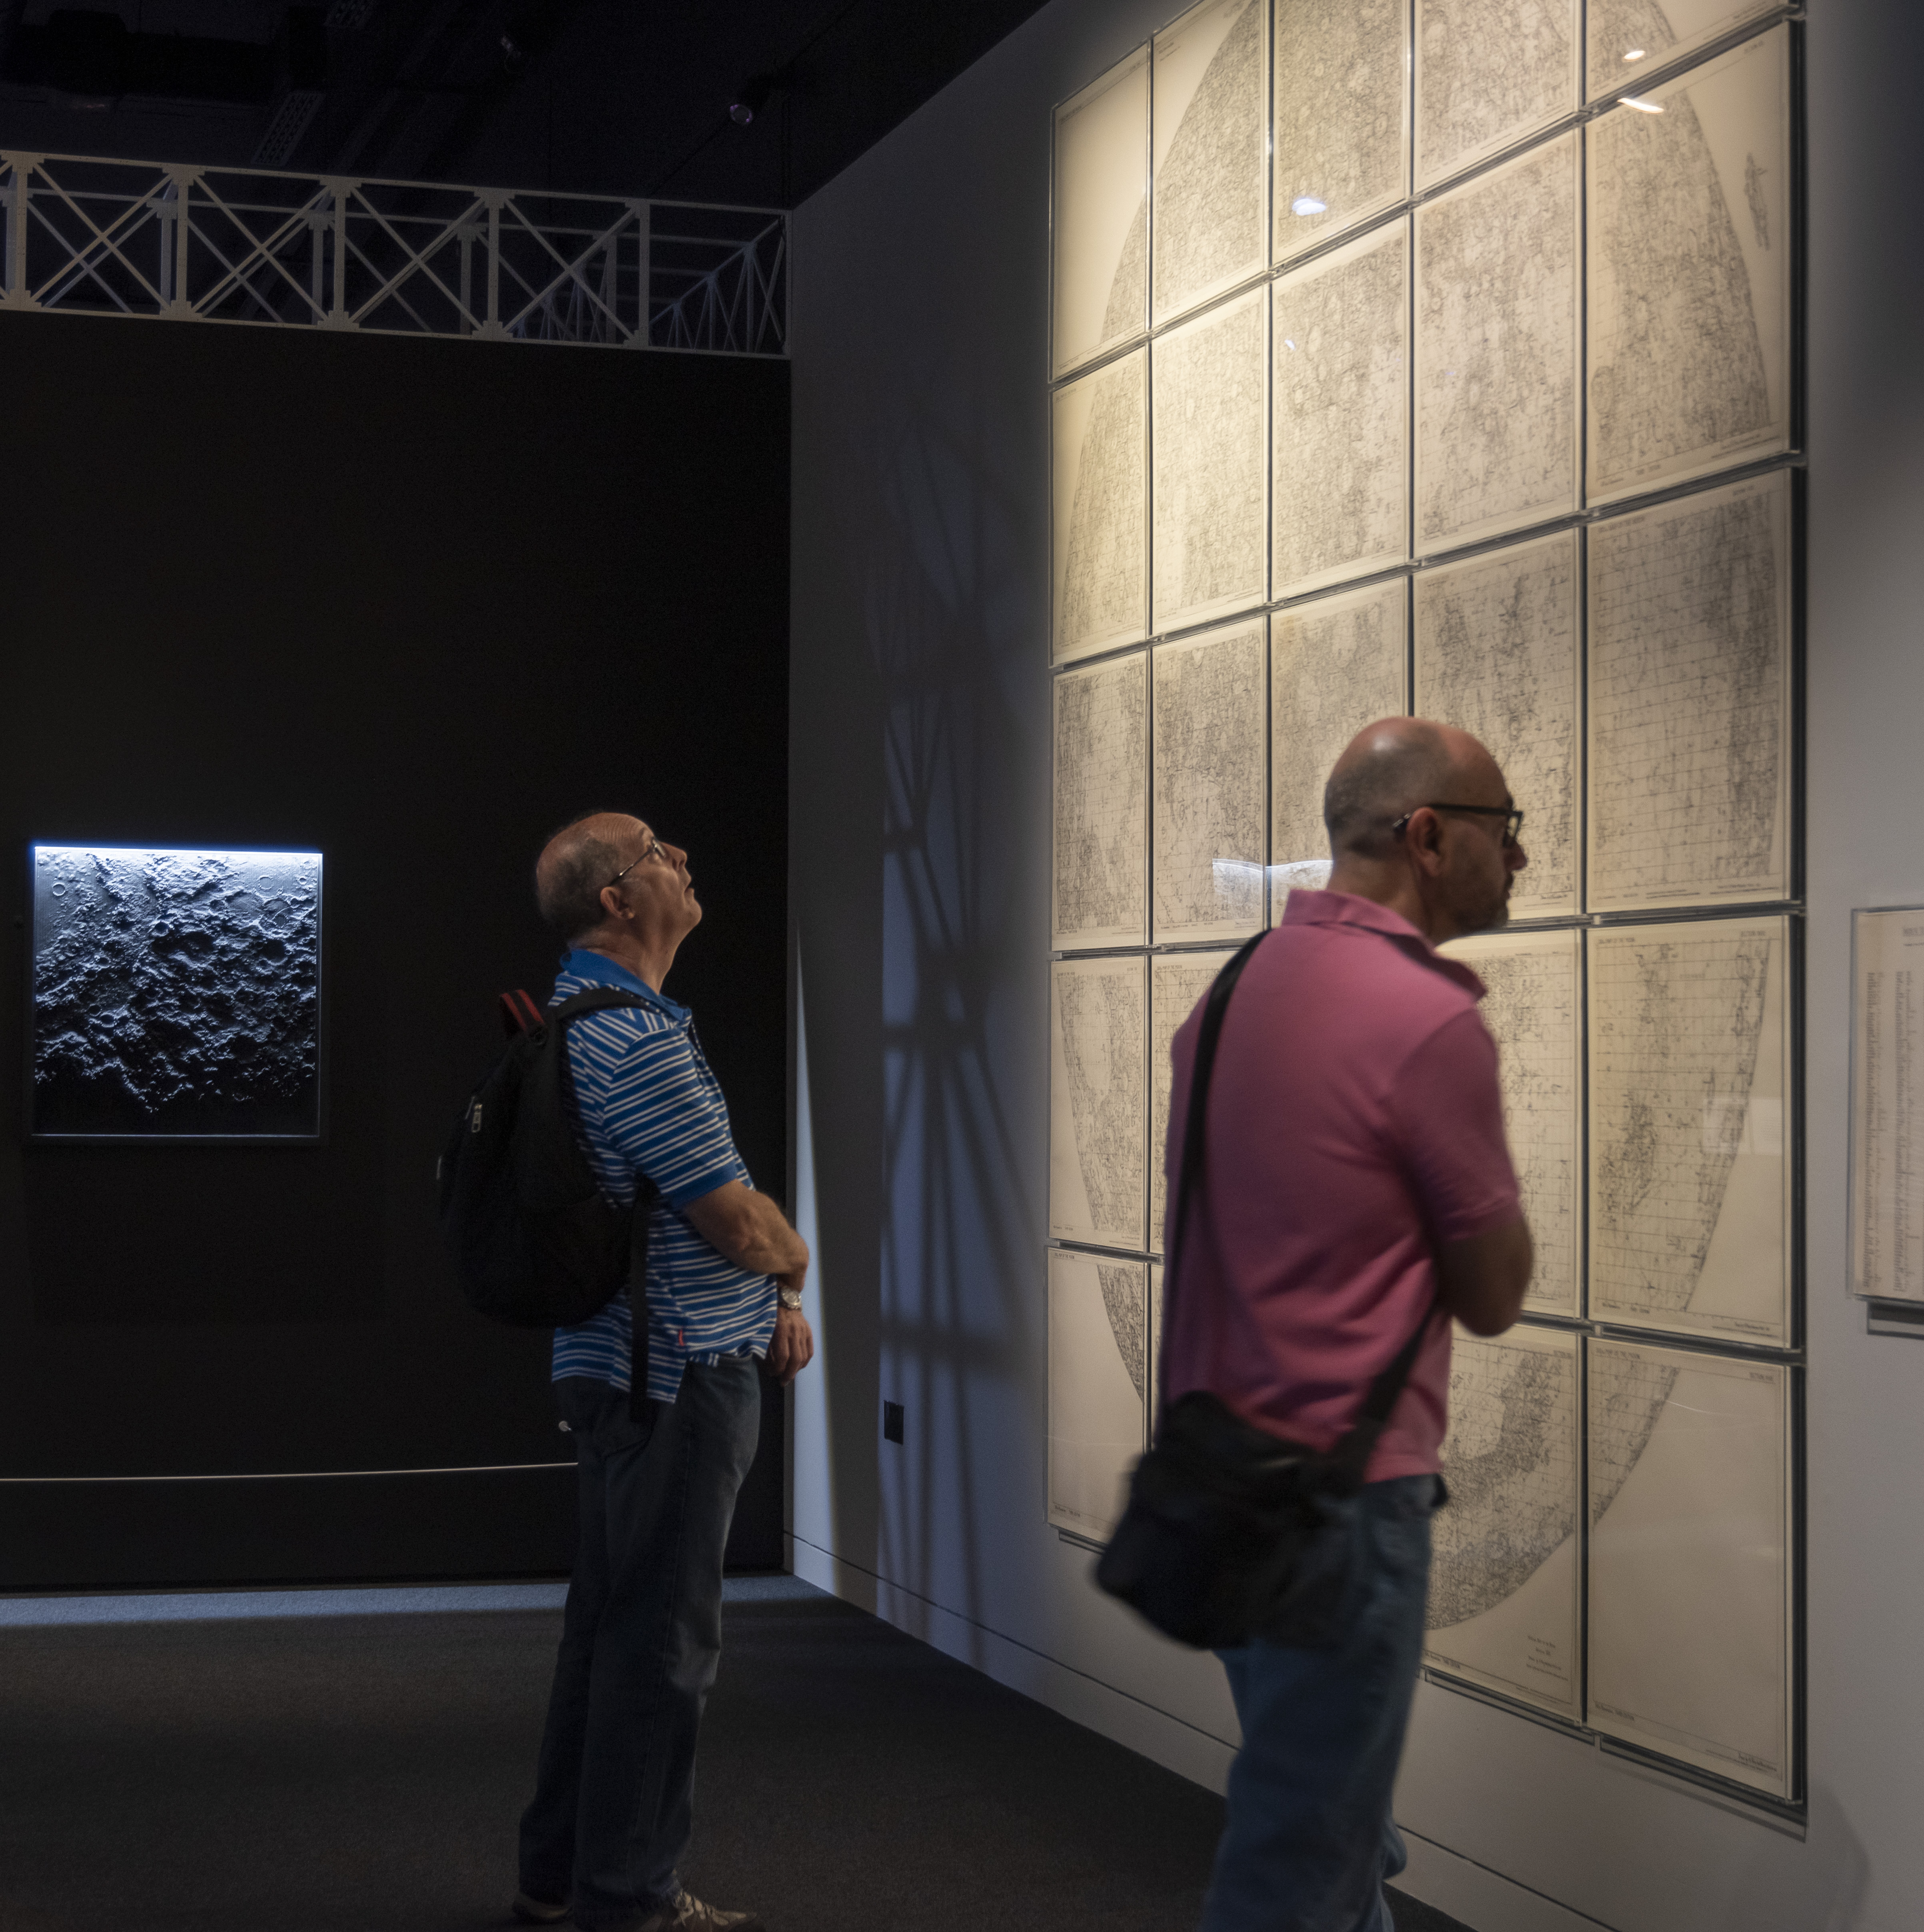 The National Maritime Museum: Major Exhibition 'The Moon'